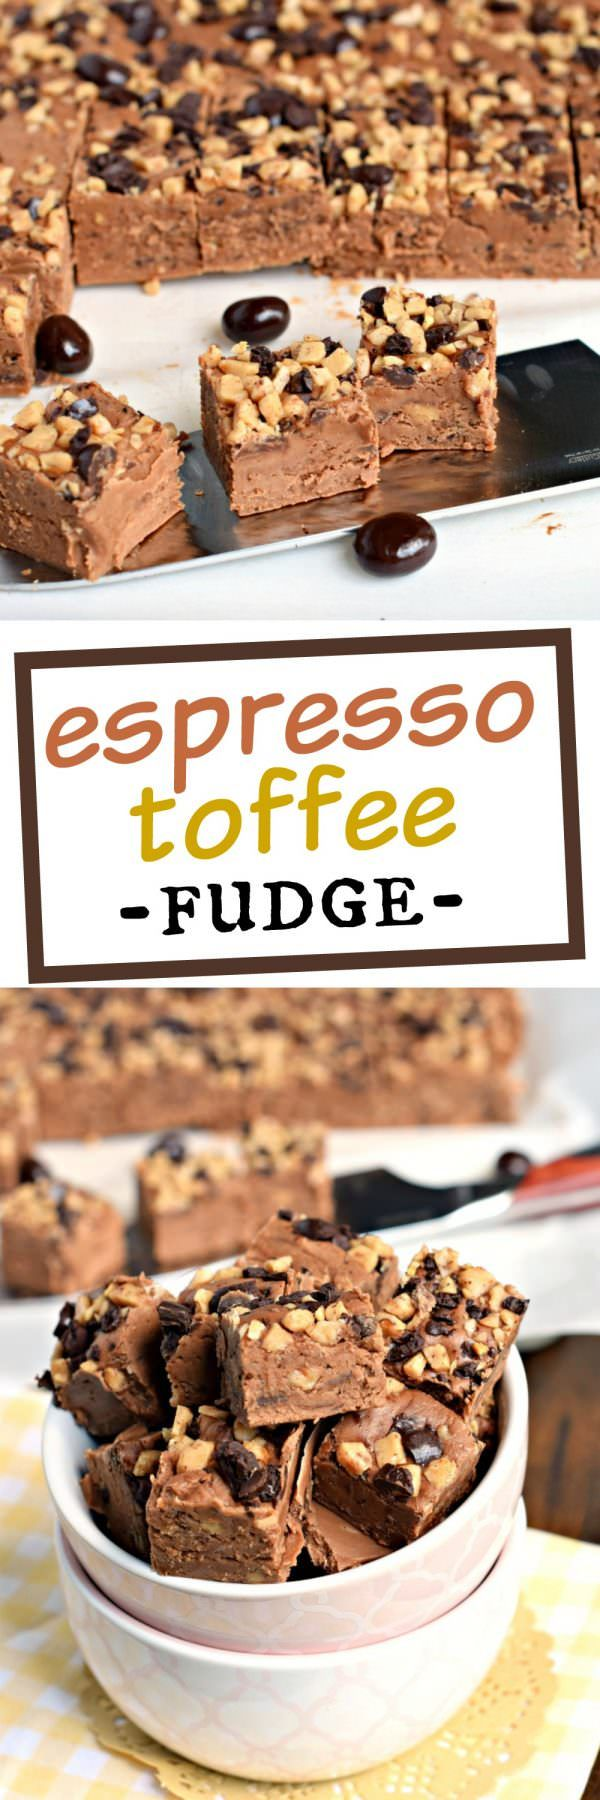 This Espresso Toffee Fudge starts with a creamy, decadent chocolate fudge base and is packed with crushed espresso beans, toffee chips and espresso powder. The perfect treat for the coffee lover in your life!